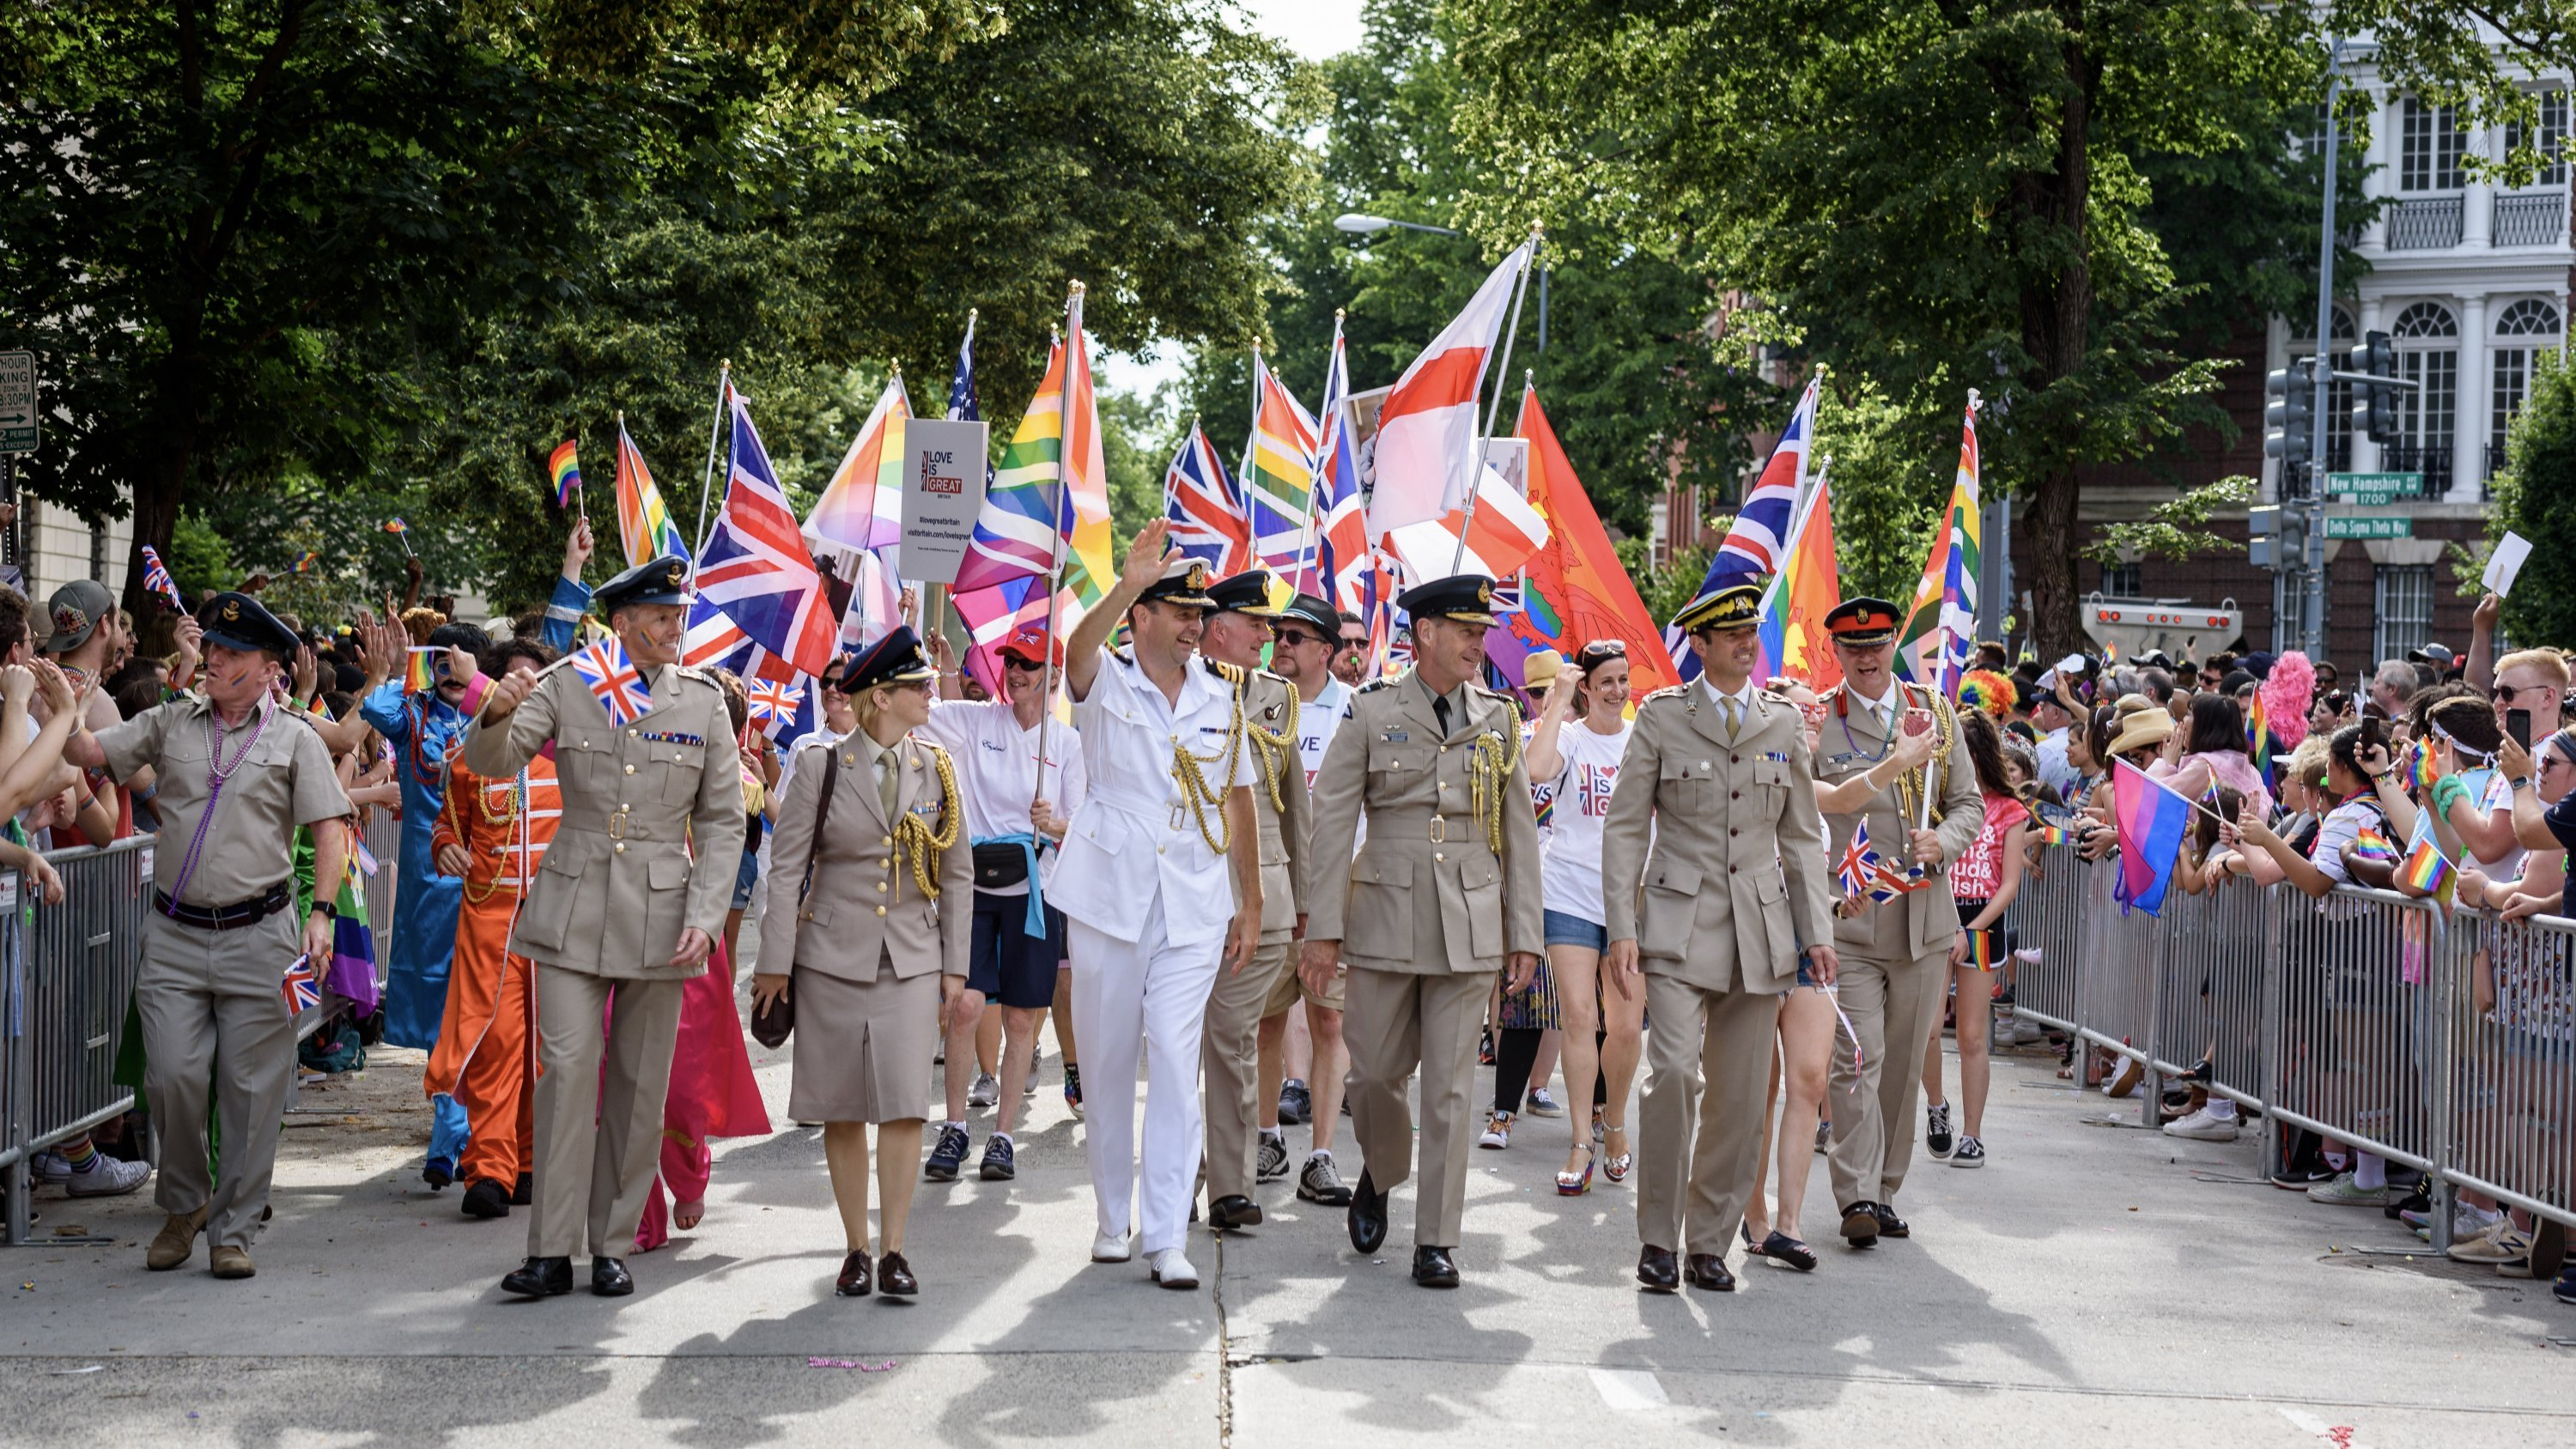 Clad in military uniforms, embassy staff waved rainbow Union Jack flags. Photograph by Scott Marder.